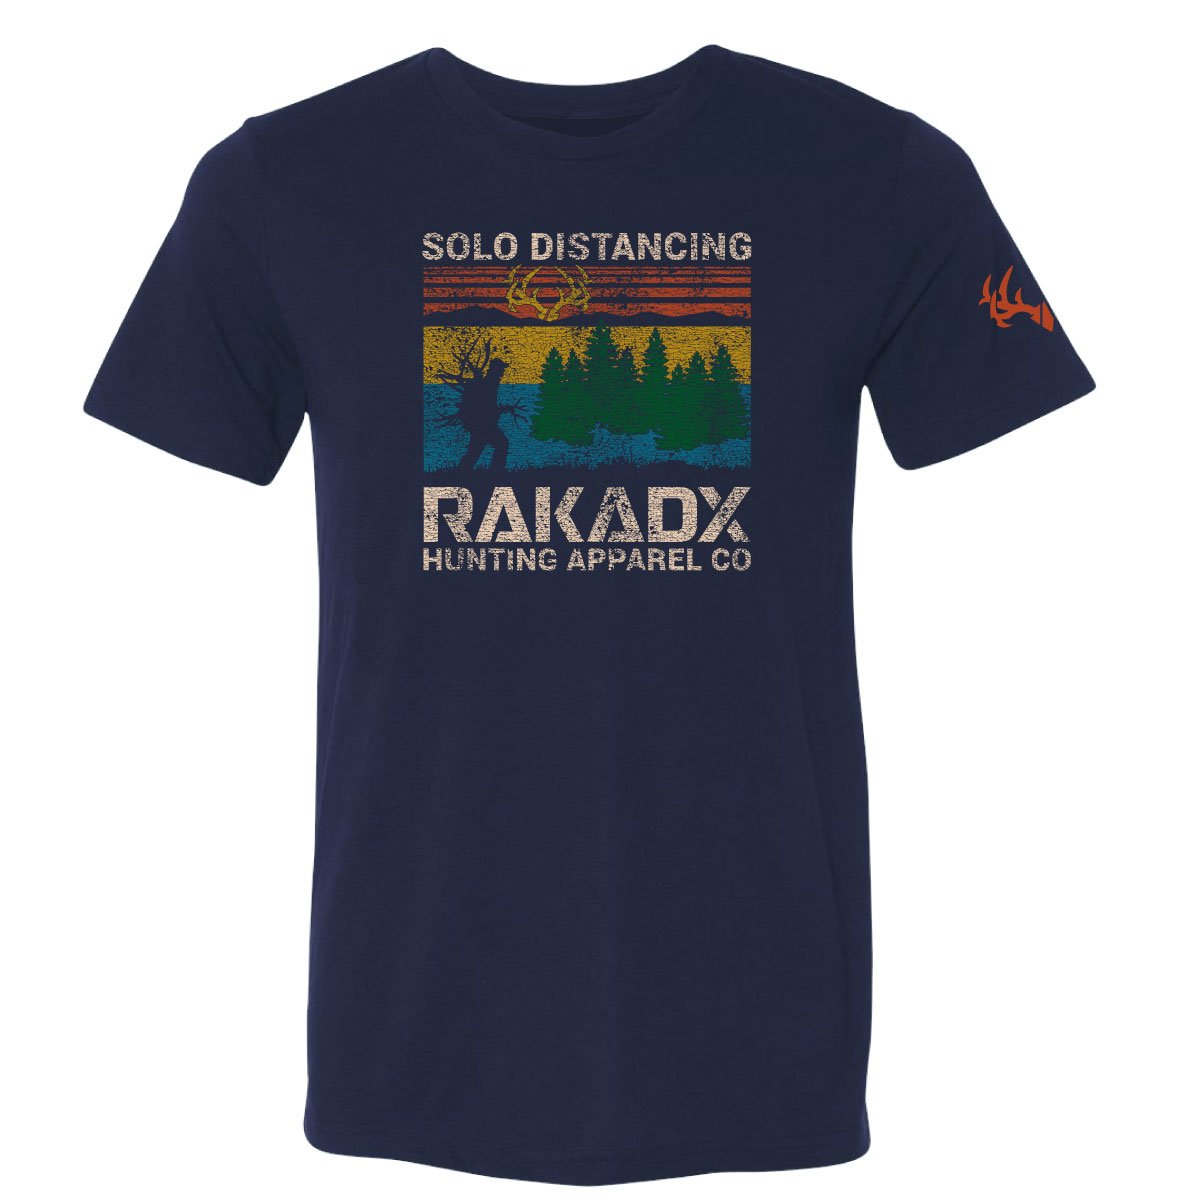 Solo Distancing Tee